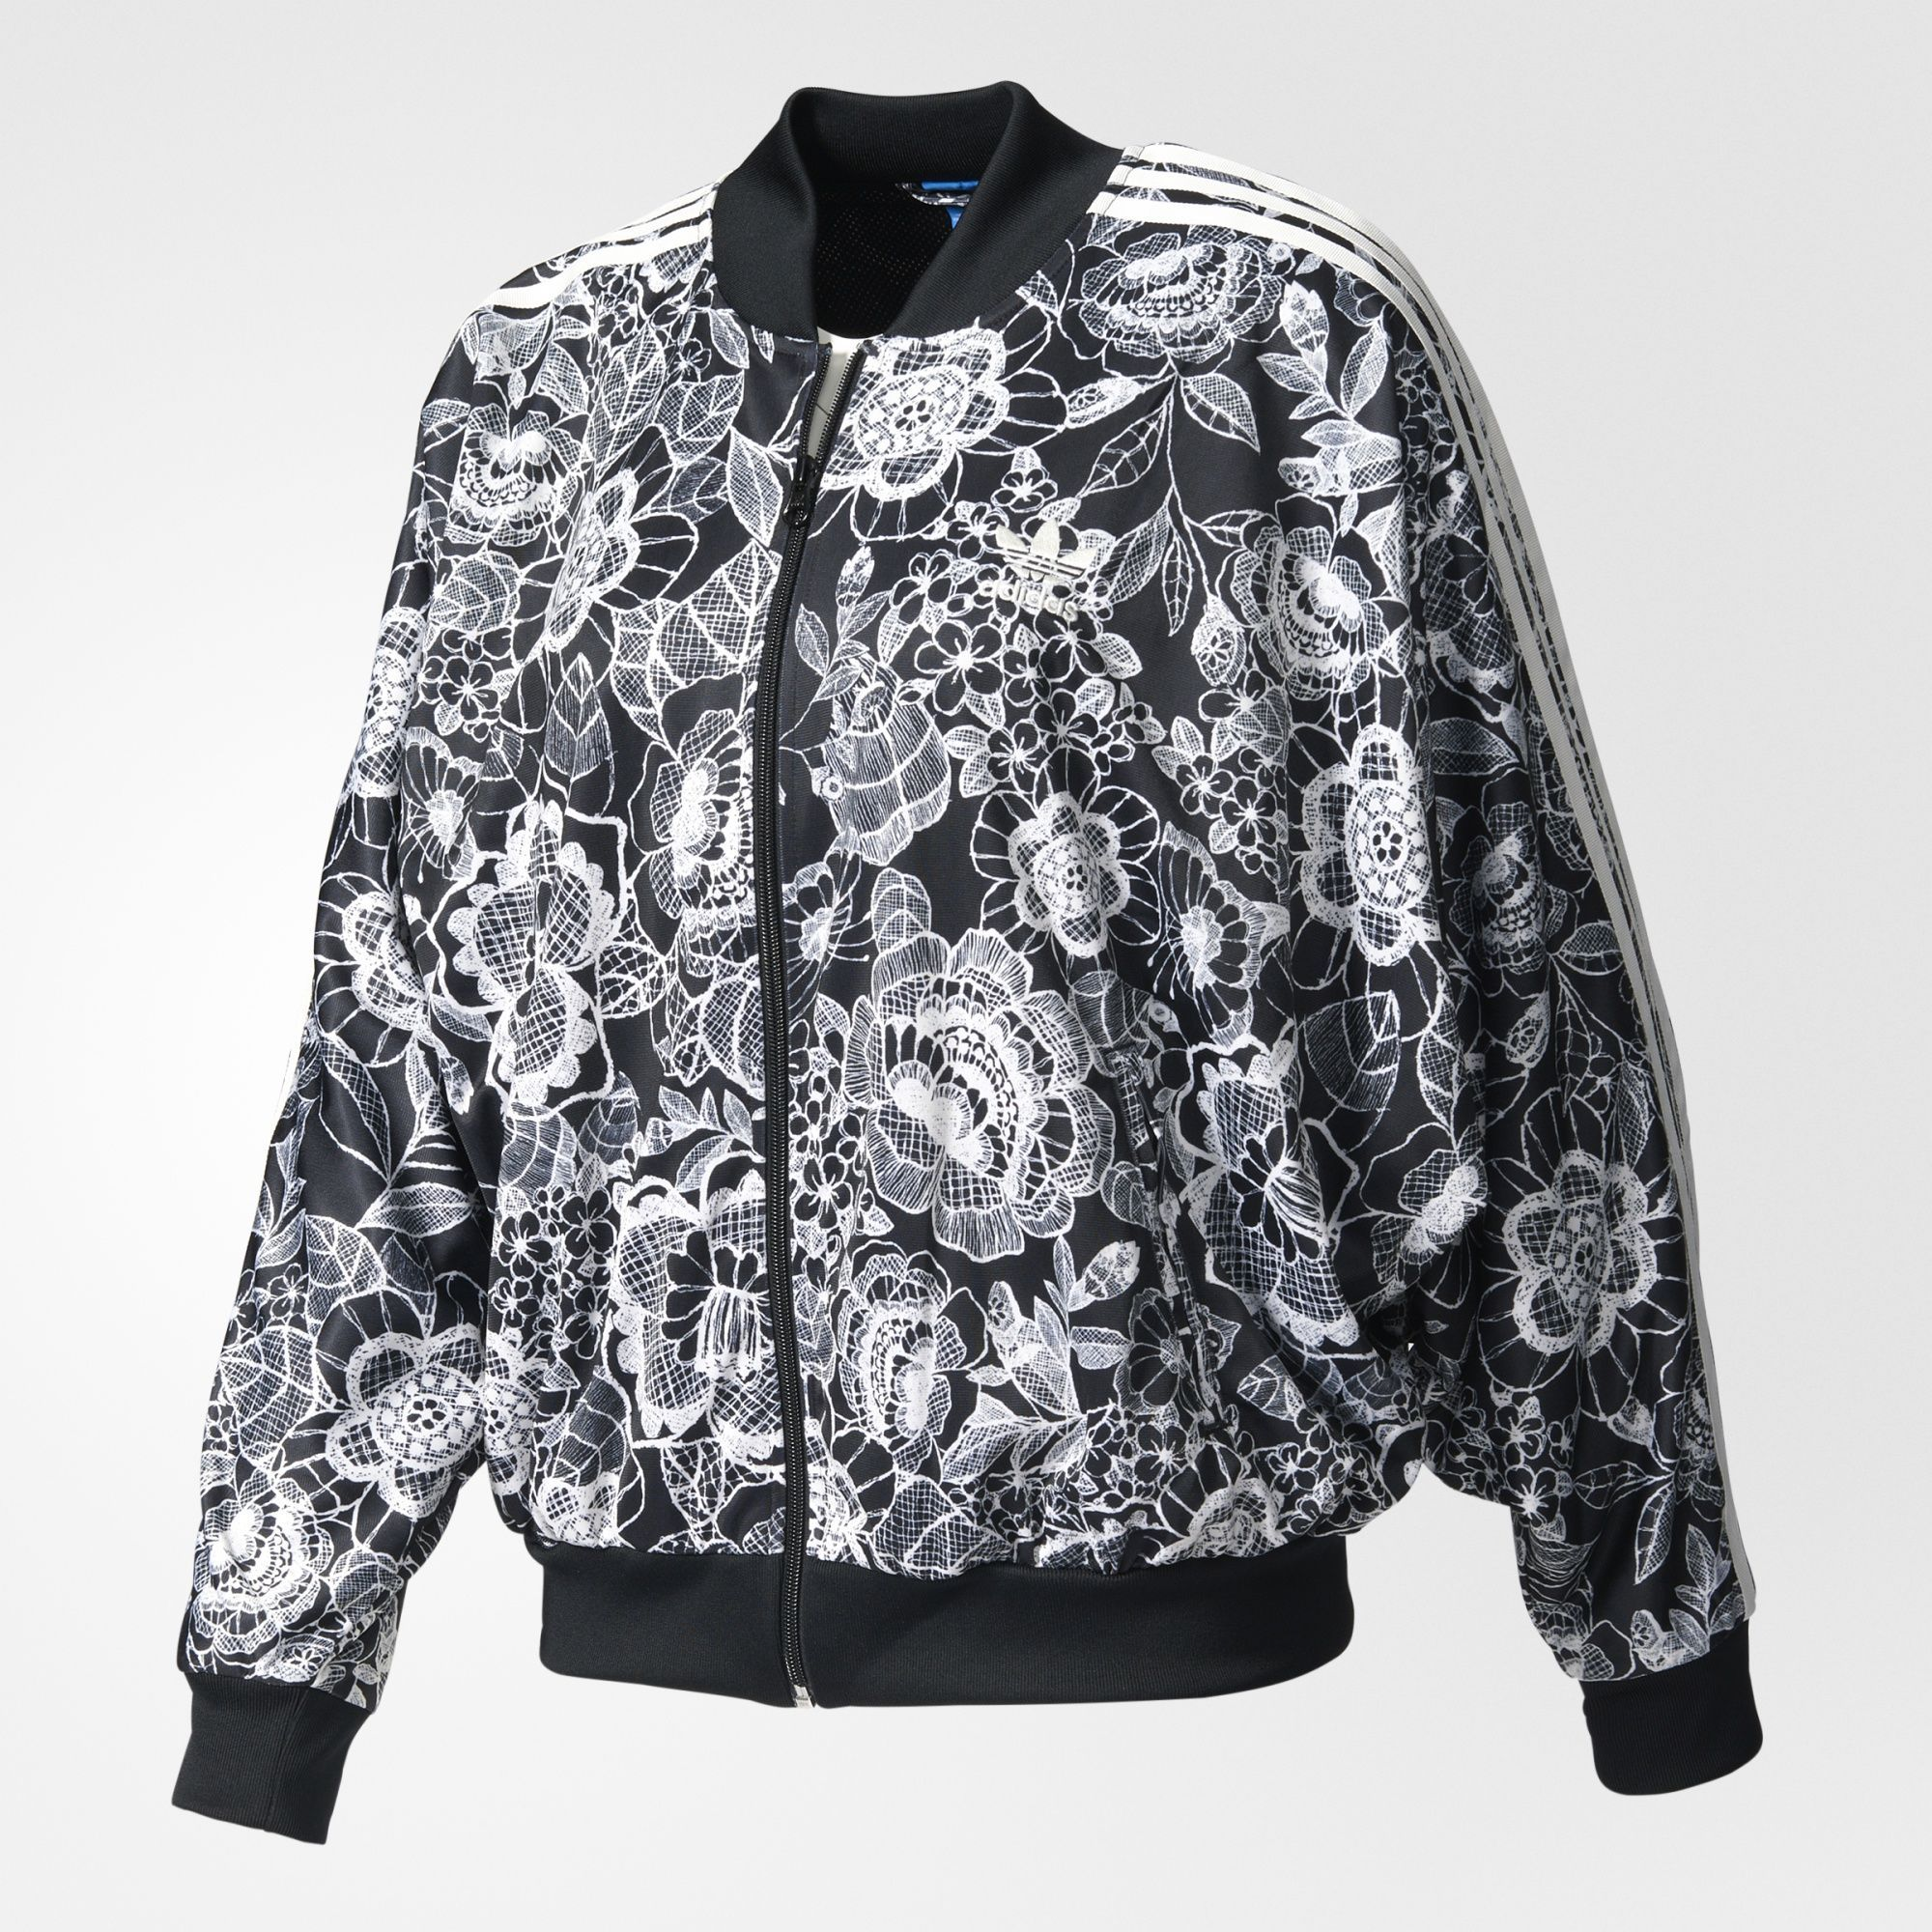 adidas Florido Cape Track Jacket £45.46 | Jackets, Fashion